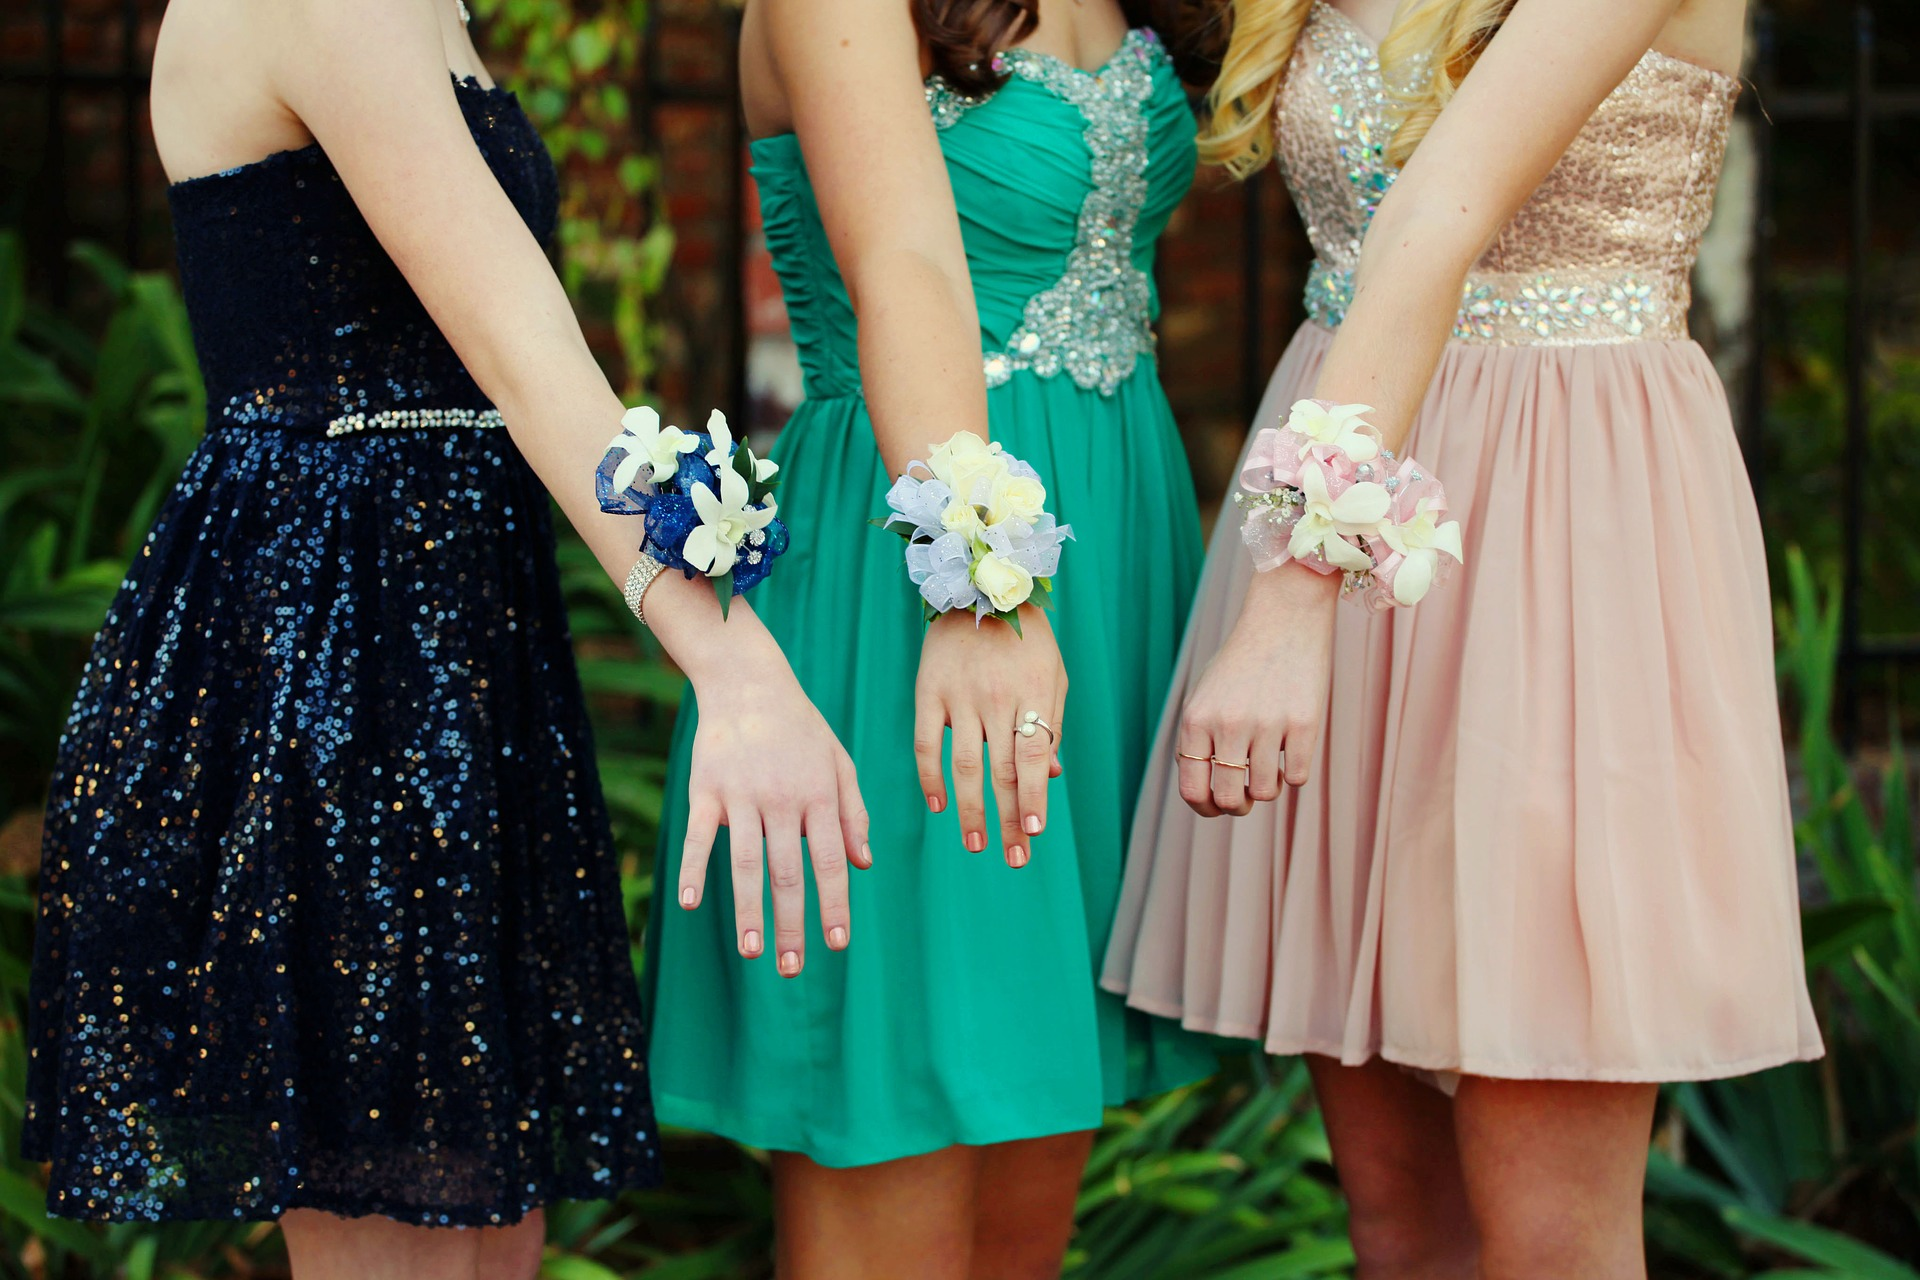 Three girls who have on dresses and corsages.